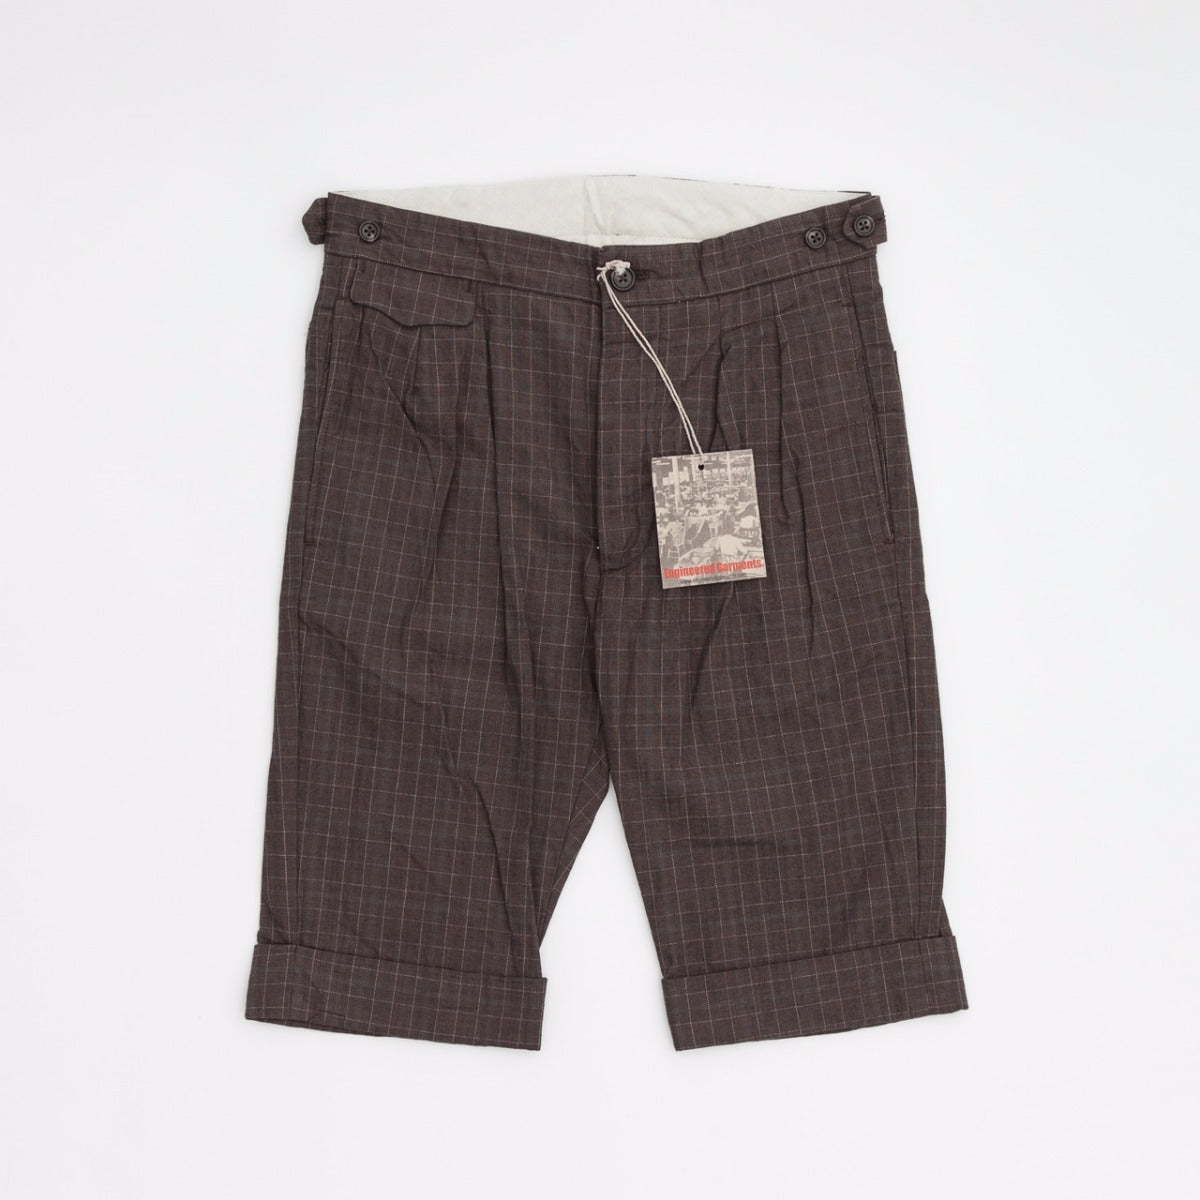 Engineered Garments Truman Shorts / HB Windowpane